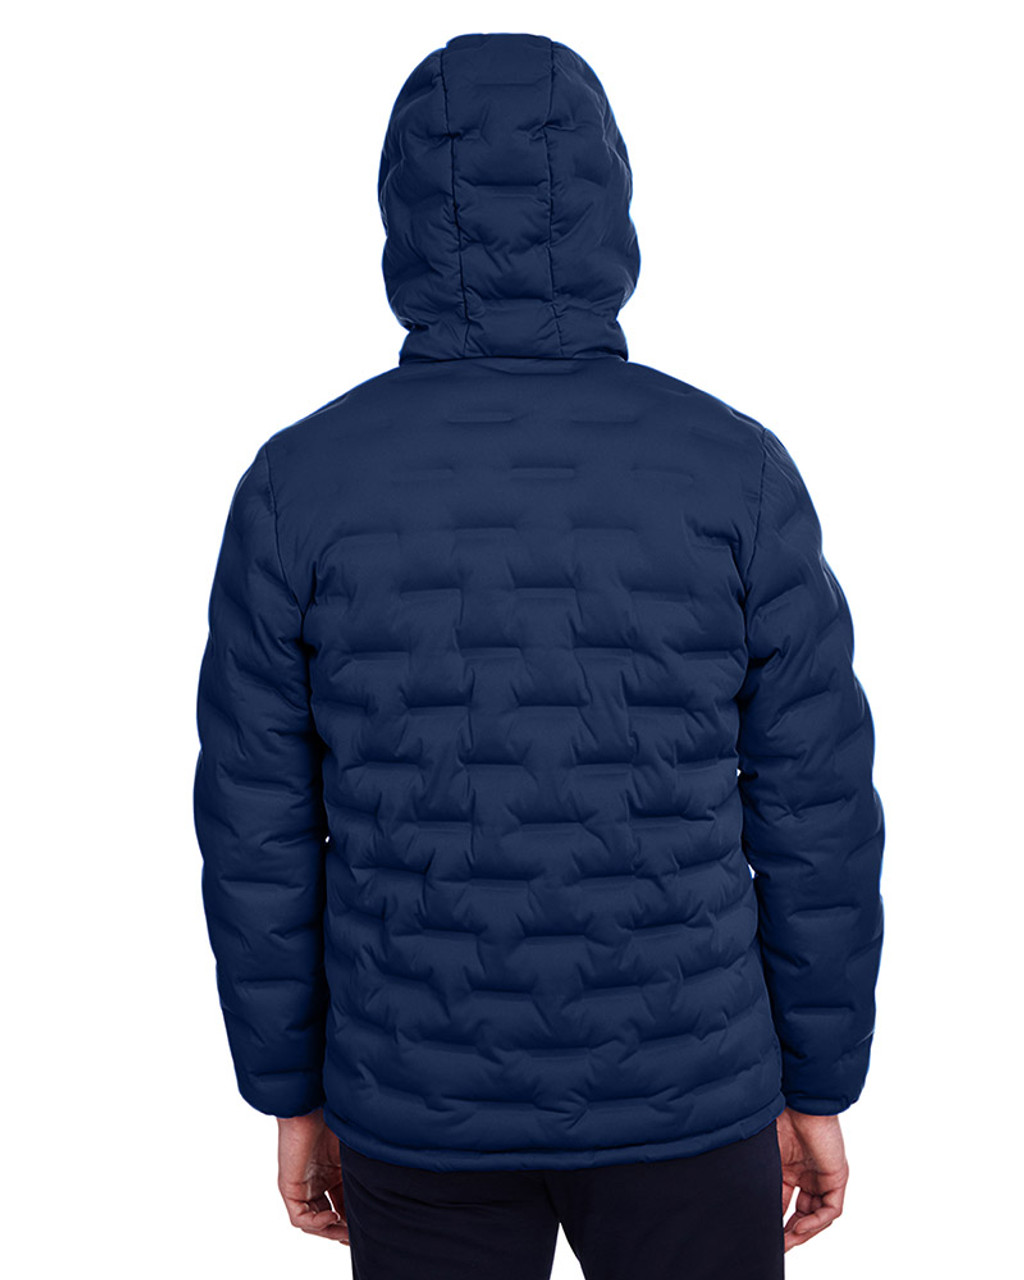 Classic Navy/Carbon - back, NE708 North End Men's Loft Puffer Jacket | Blankclothing.ca